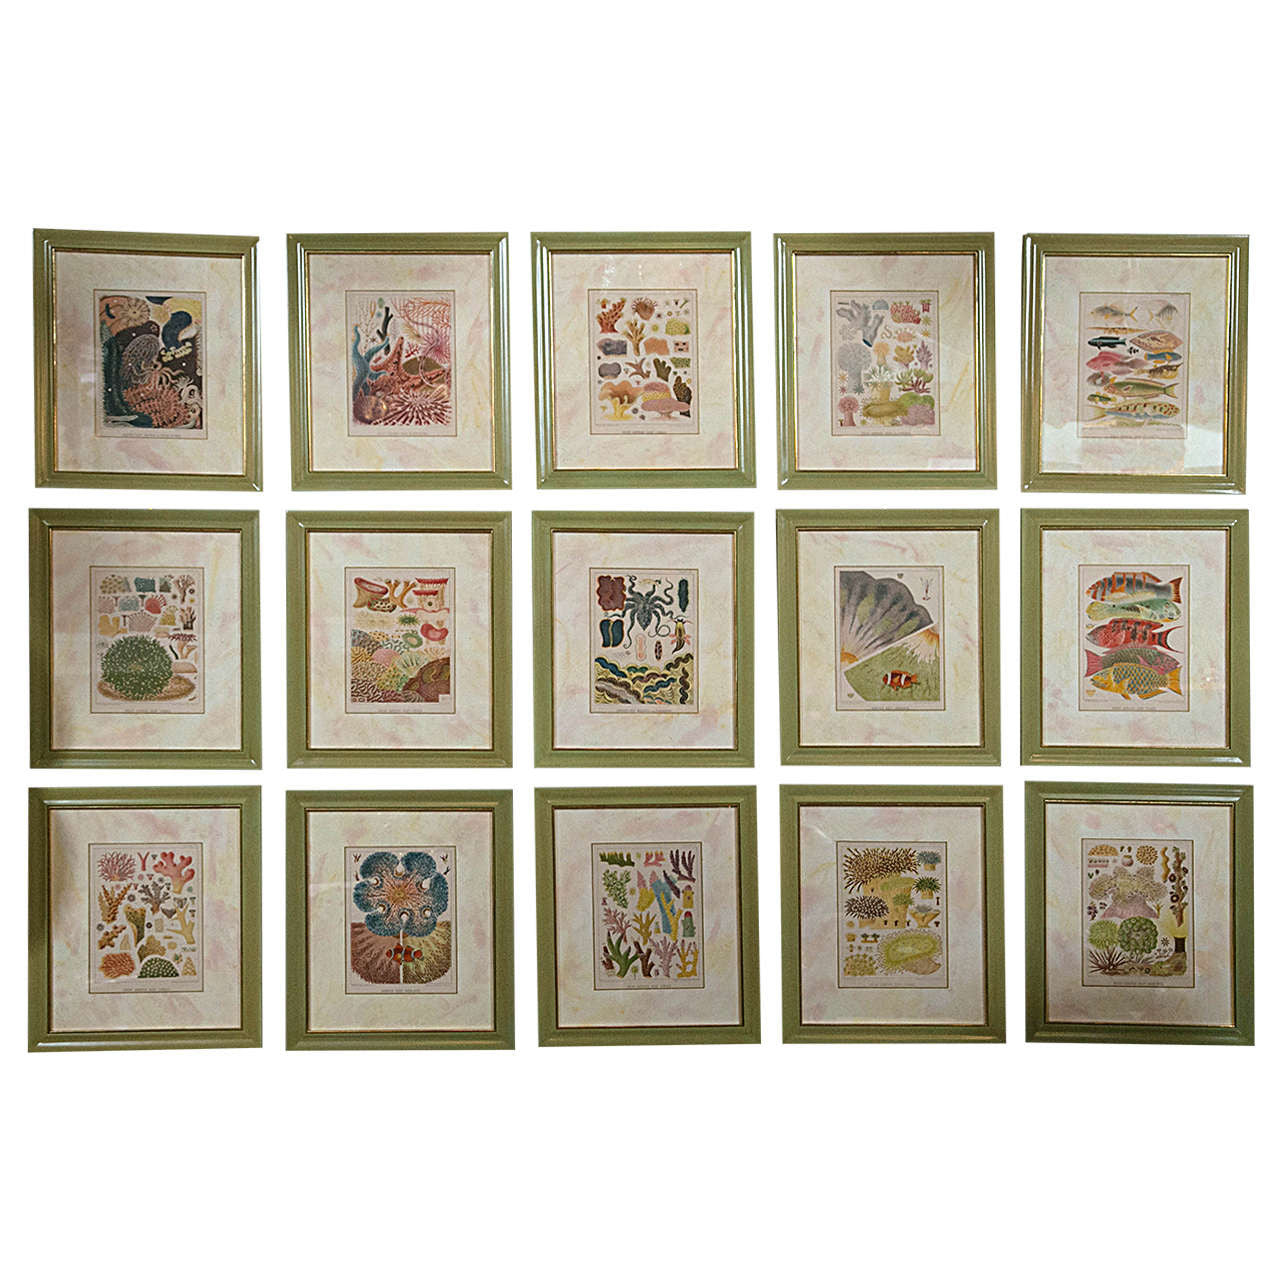 Set of 15 Chromolithographs by W. Saville-Kent